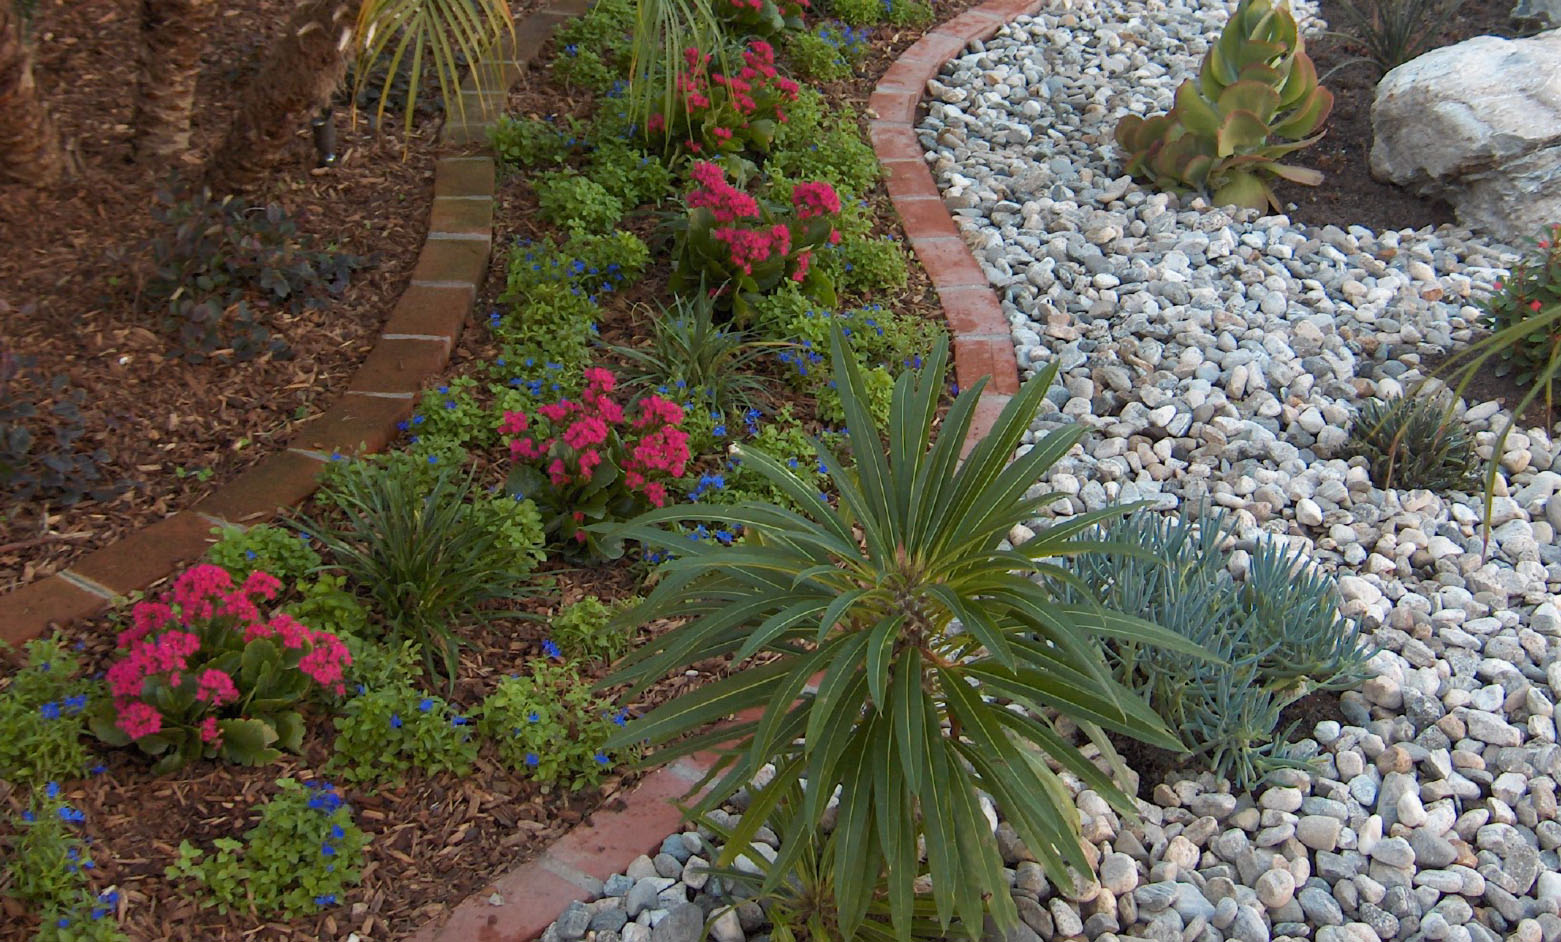 Landscaping With Rocks Vs Mulch